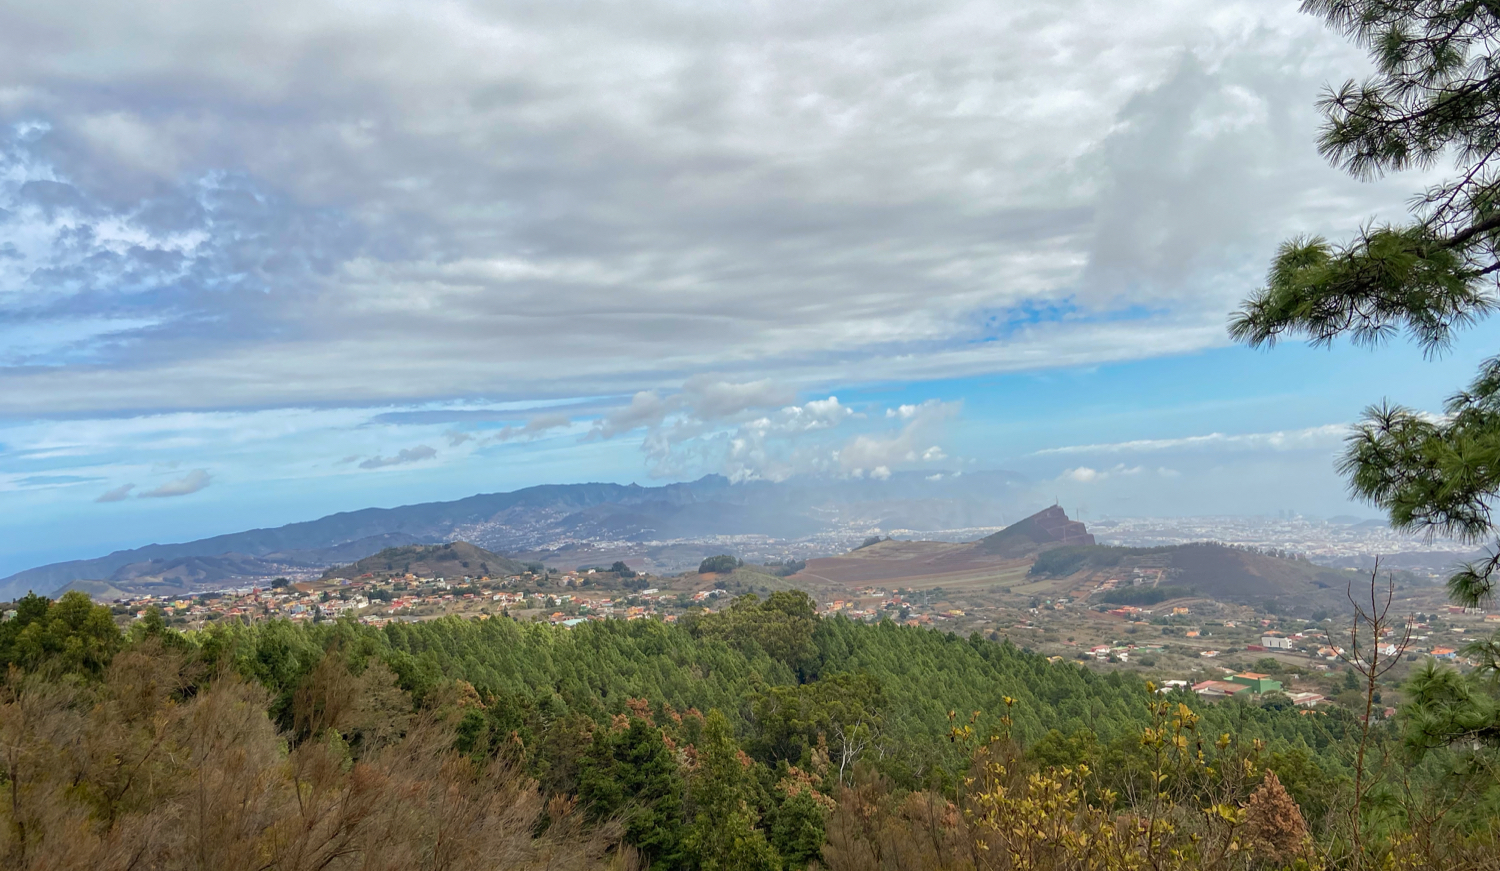 View from the heights of the north of Tenerife and the Anaga Mountains